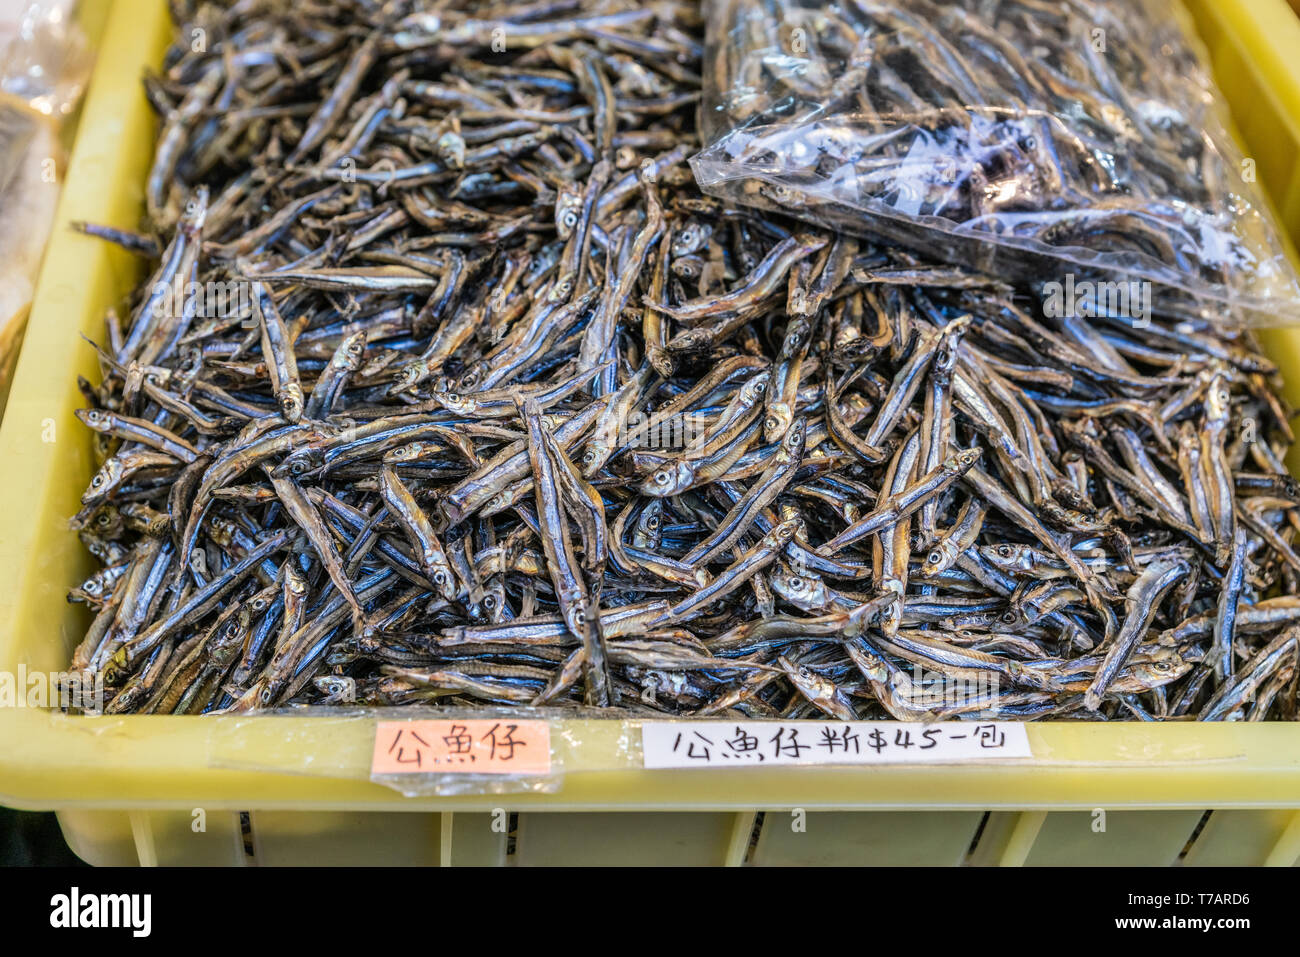 Hong Kong, China - March 7, 2019: Tai O Fishing village. Closeup of Yellow basis filled to the top with brown-blue-yellow dried ansjovis. - Stock Image